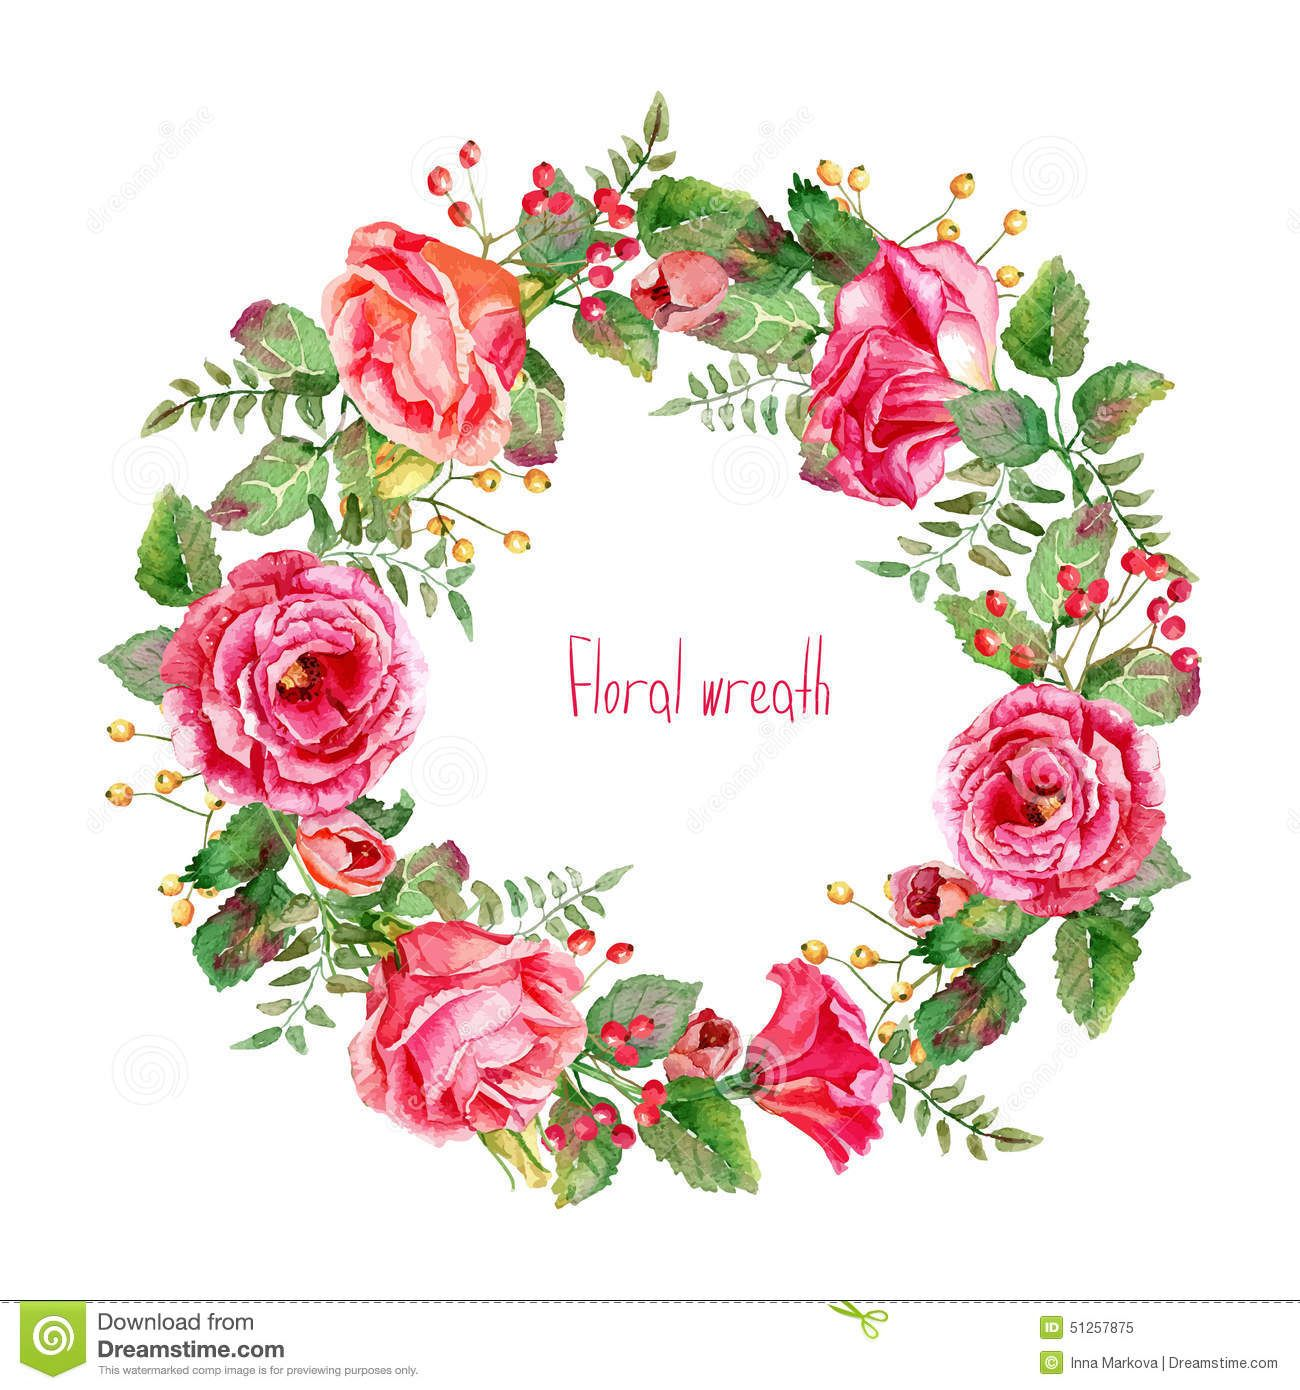 Vector Round Frame Of Watercolor Roses And Berries Download From Over 47 Million High Quality Stock P Wreath Watercolor Watercolor Flowers Flower Vector Art